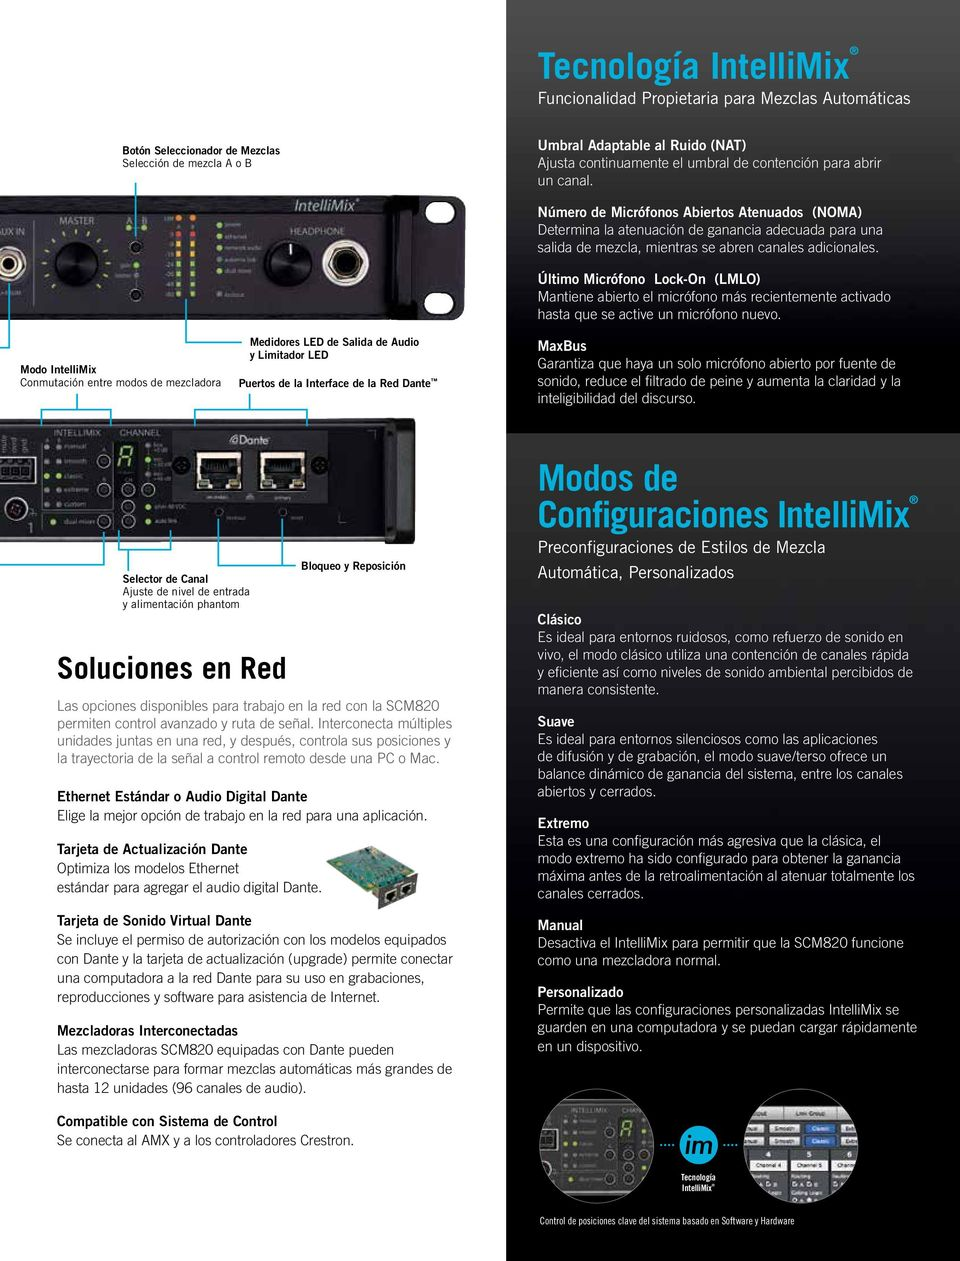 Modo IntelliMix Conmutación entre modos de mezcladora Medidores LED de Salida de Audio y Limitador LED Puertos de la Interface de la Red Dante Número de Micrófonos Abiertos Atenuados (NOMA) Determina